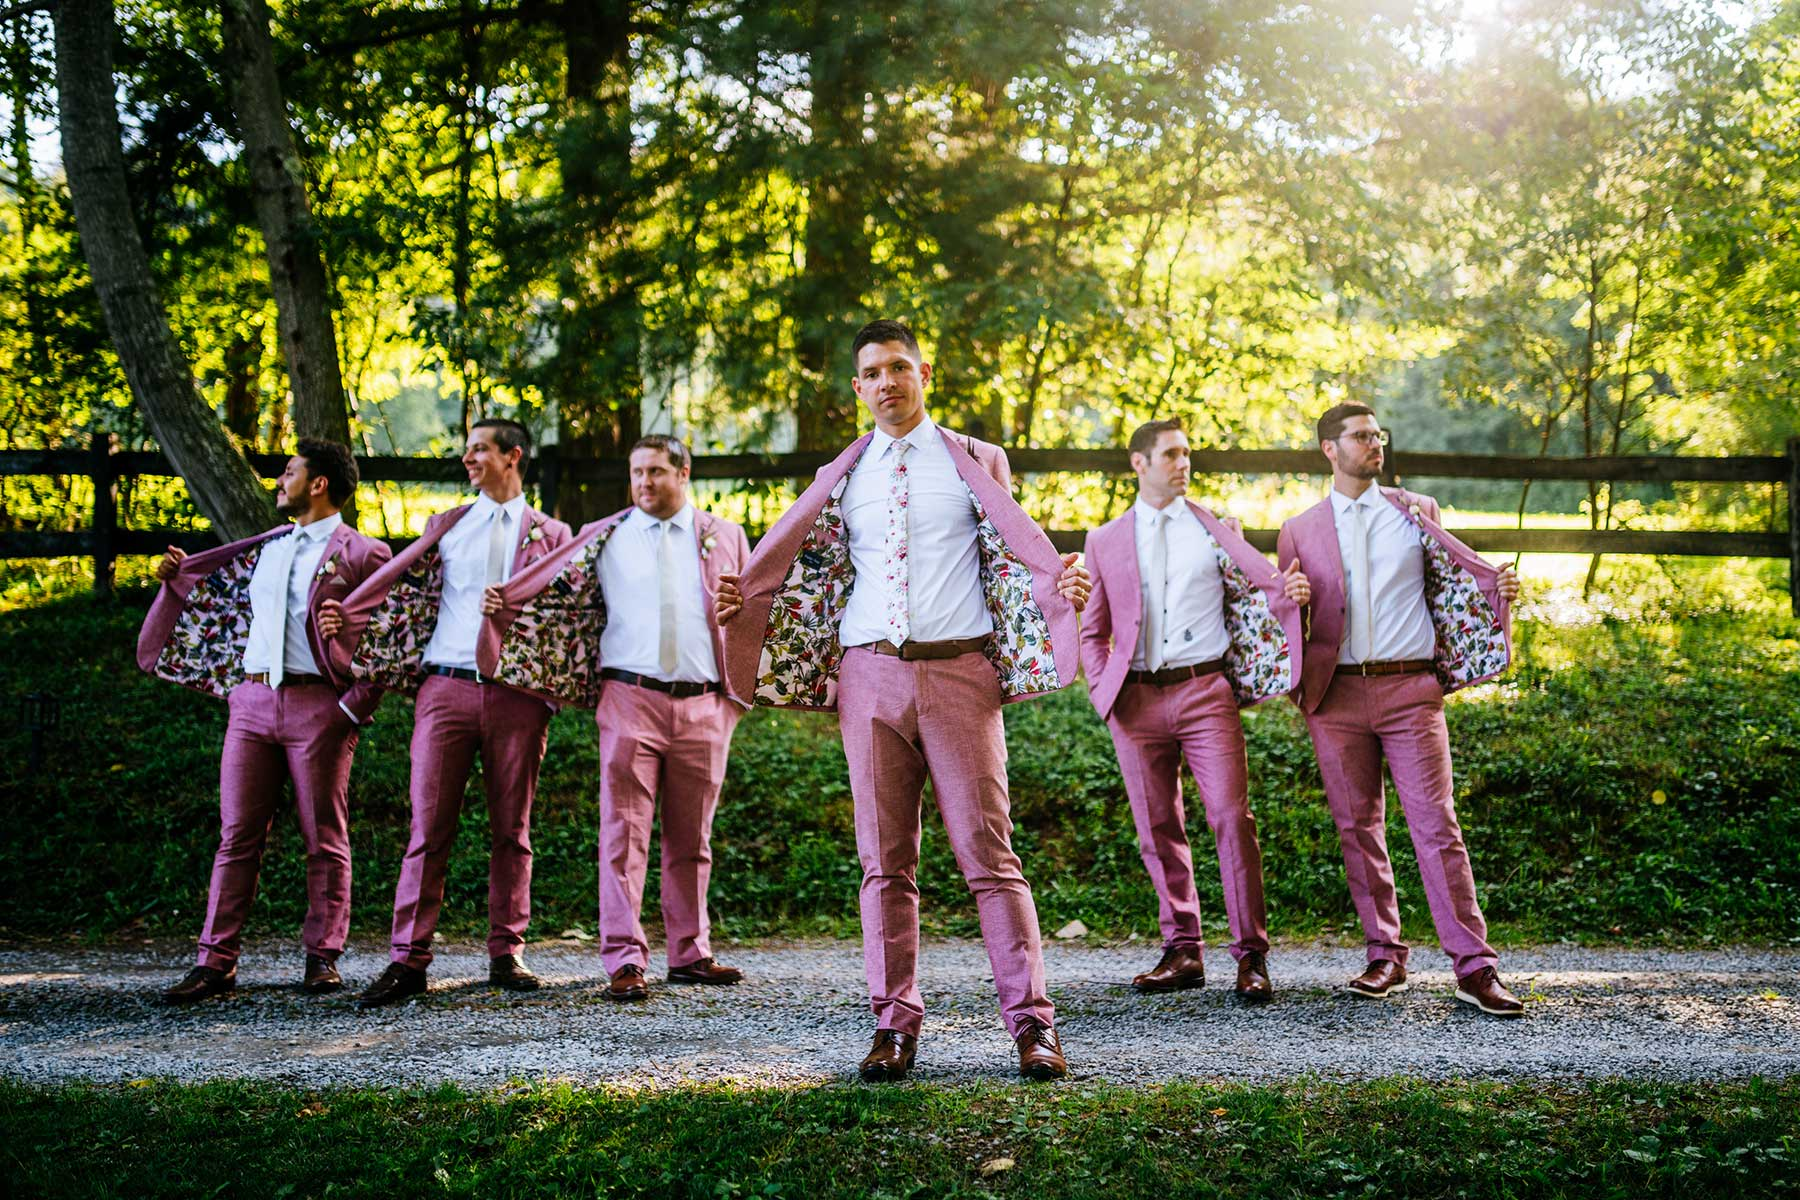 groomsmen floral lining suits